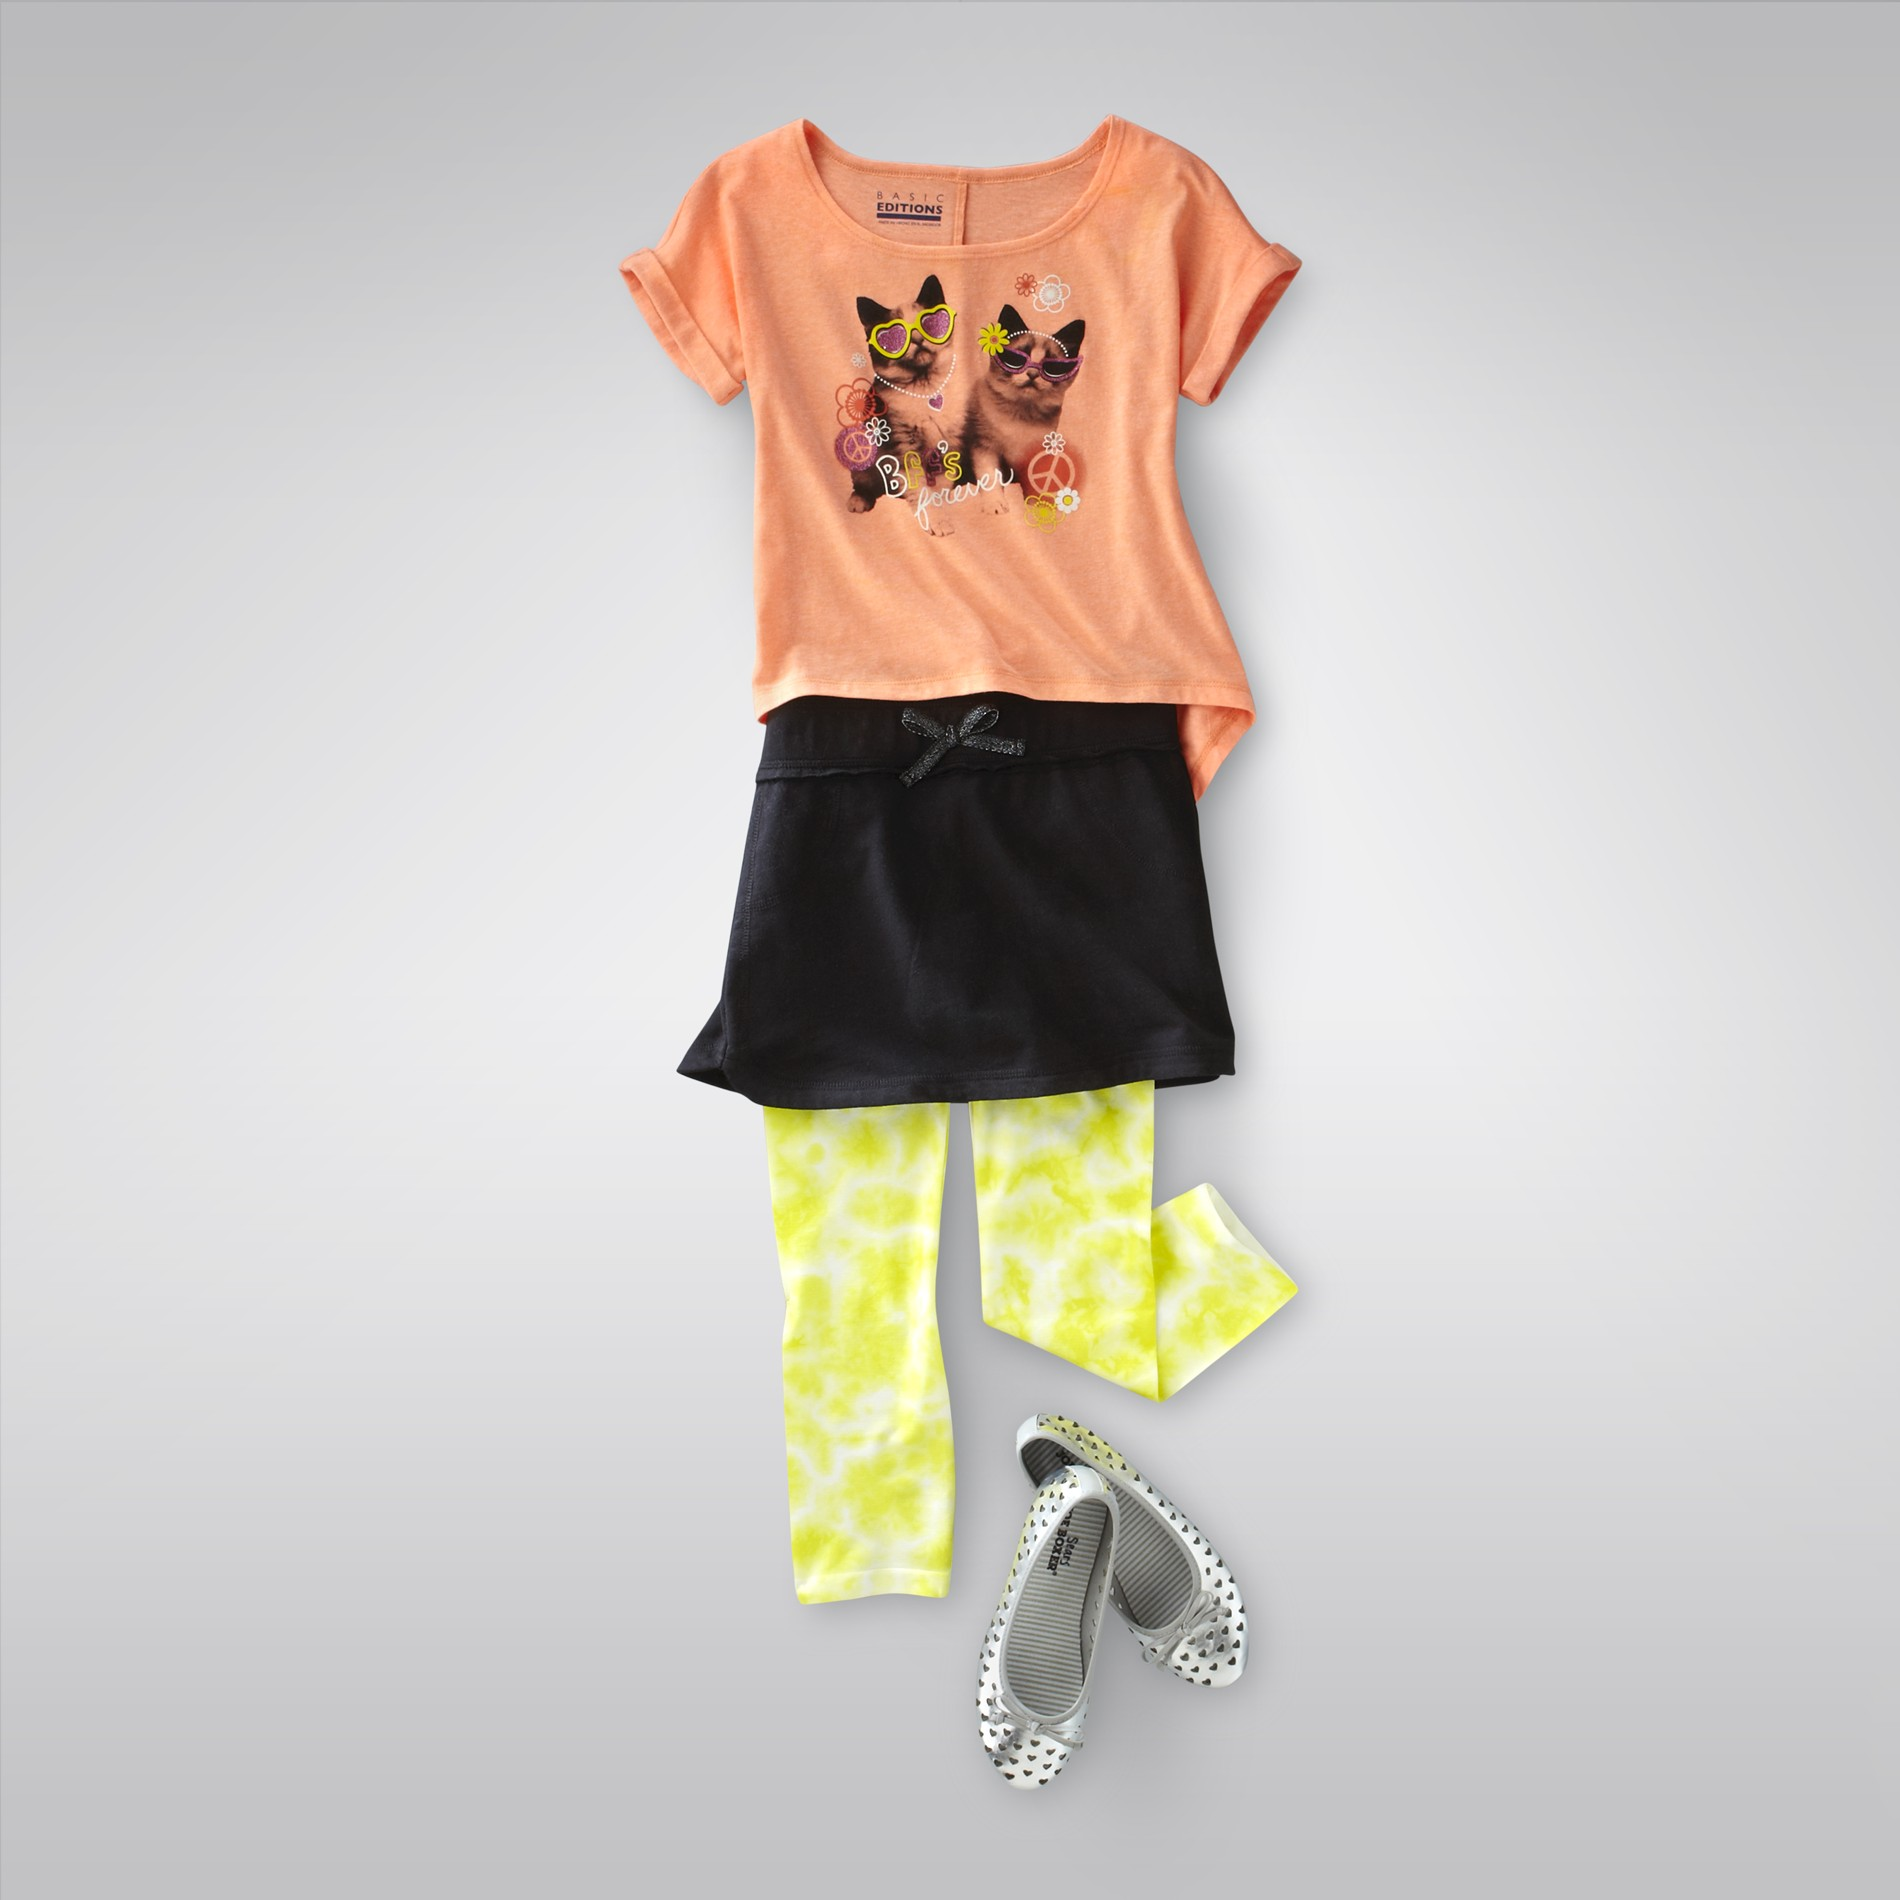 Primed for Playtime Outfit at Kmart.com